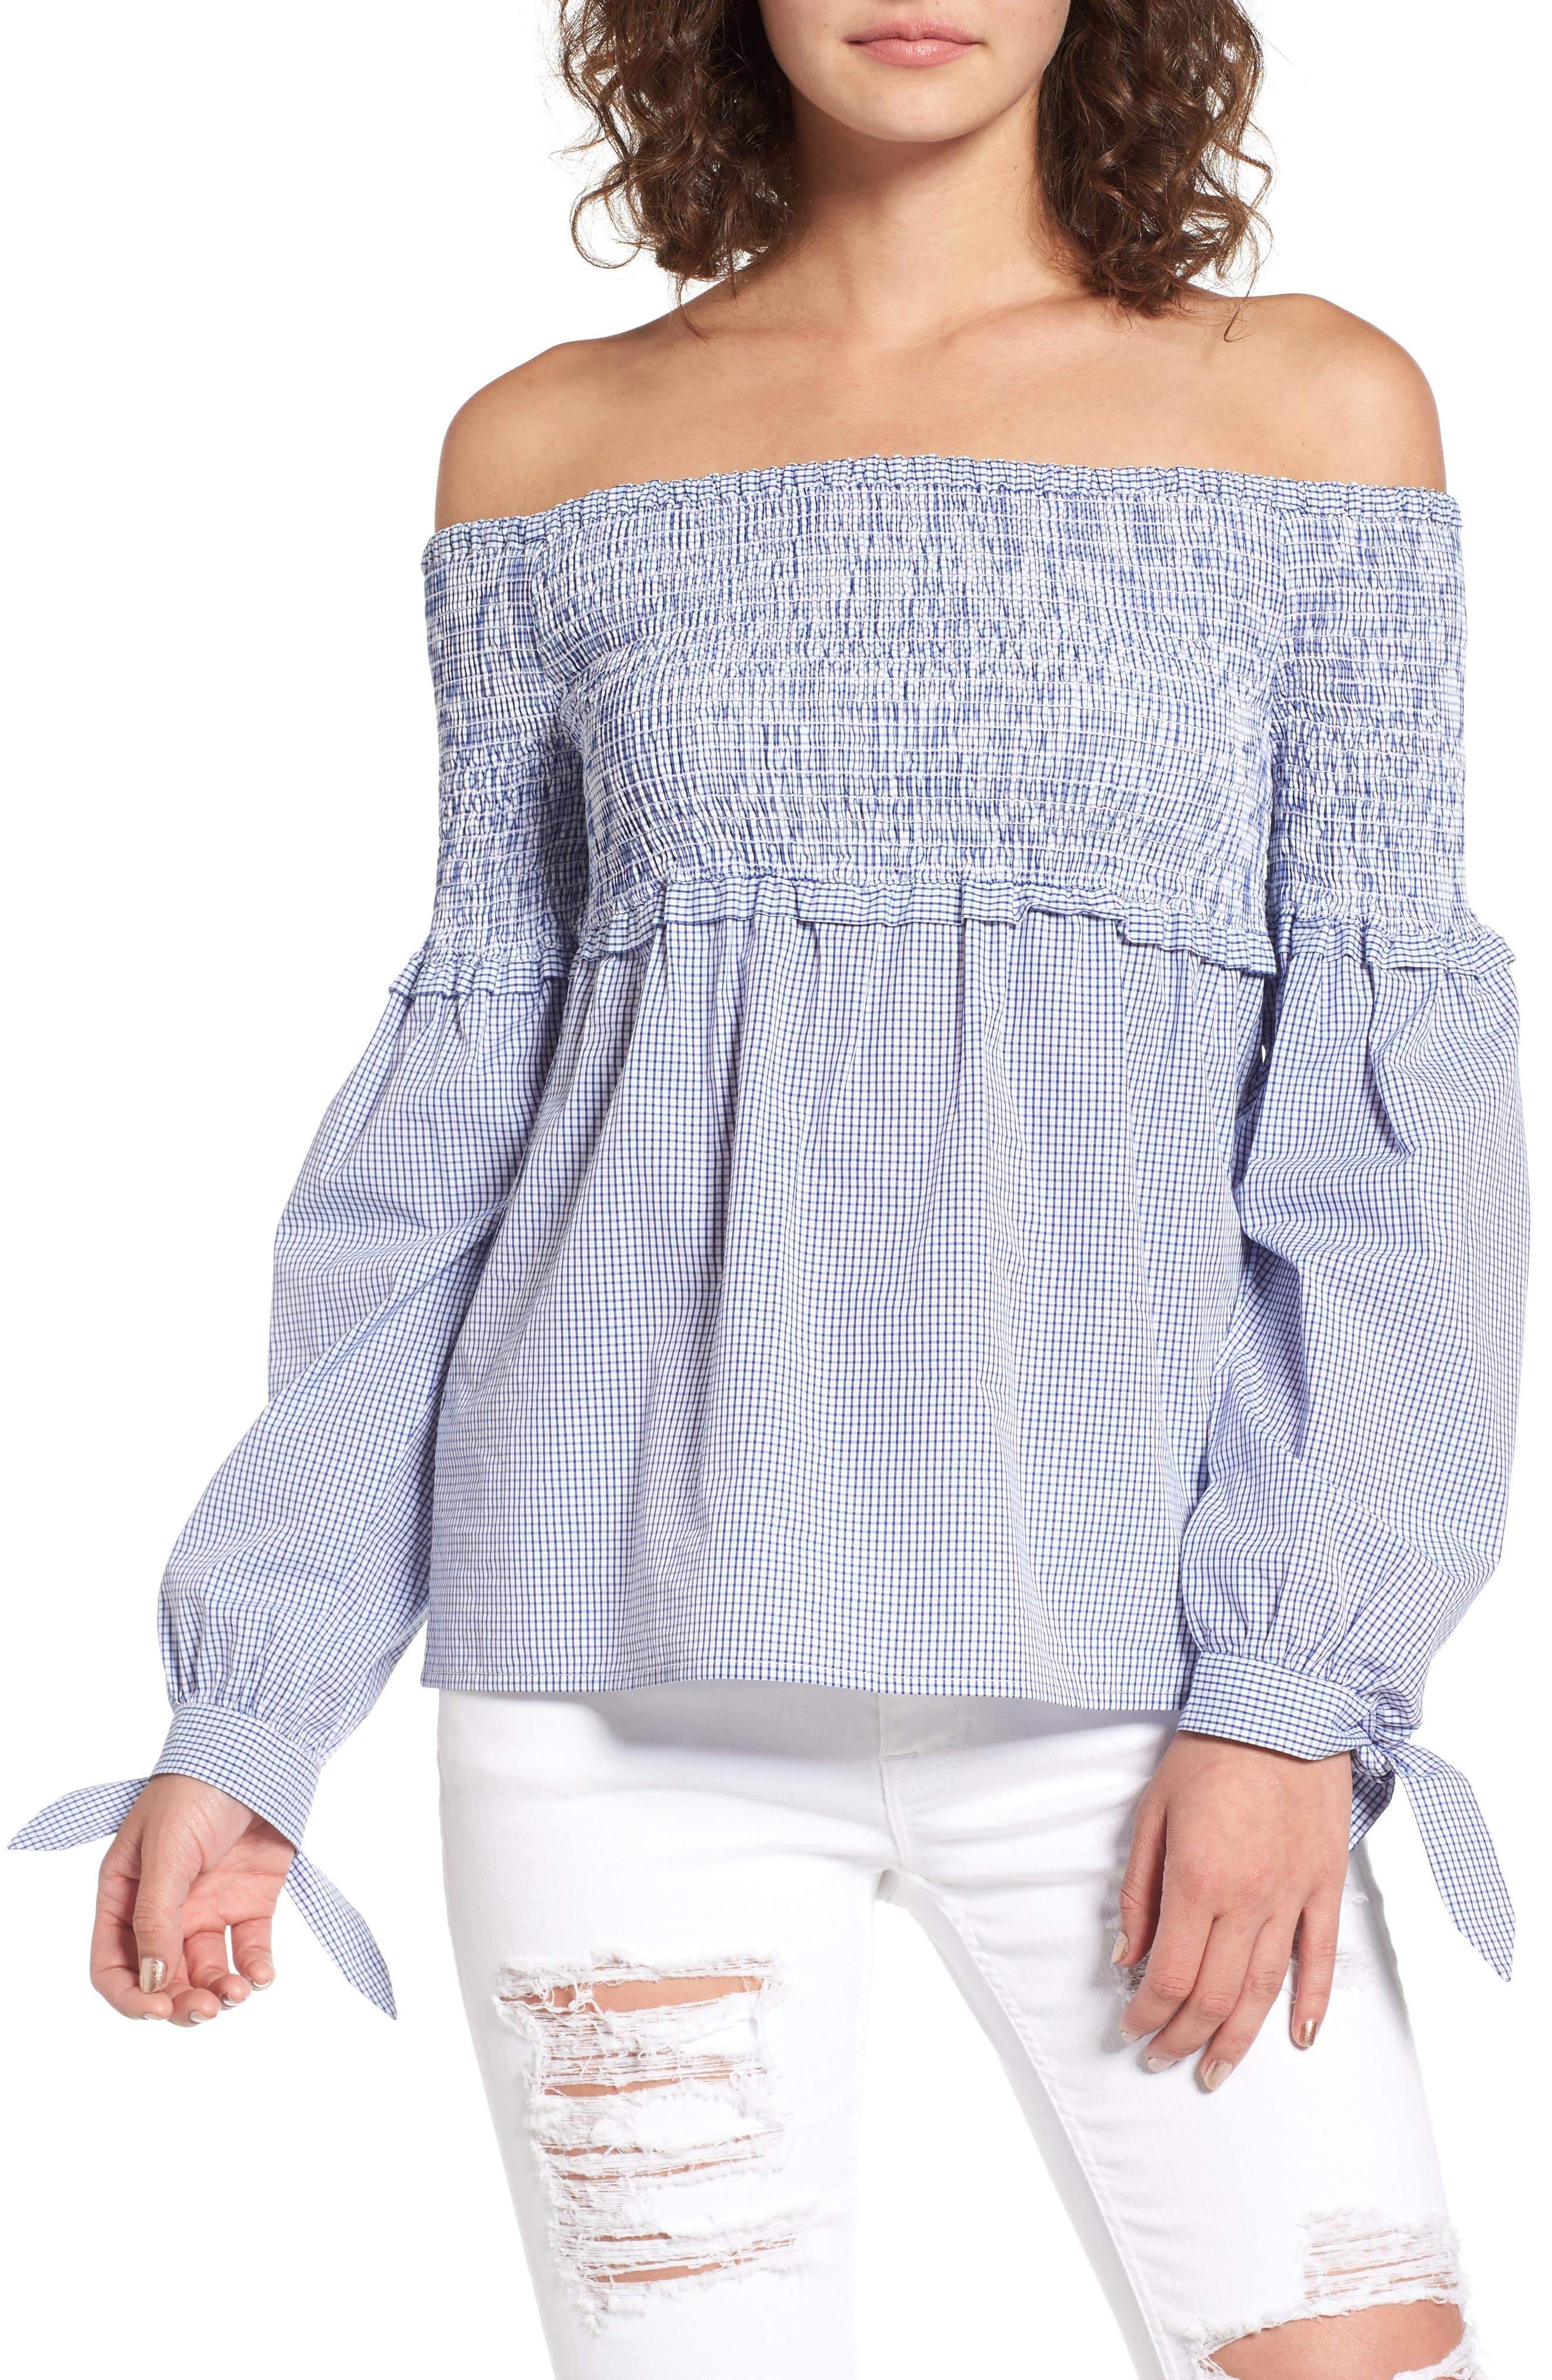 Libby Smocked Off the Shoulder Top,                             Main thumbnail 1, color,                             403